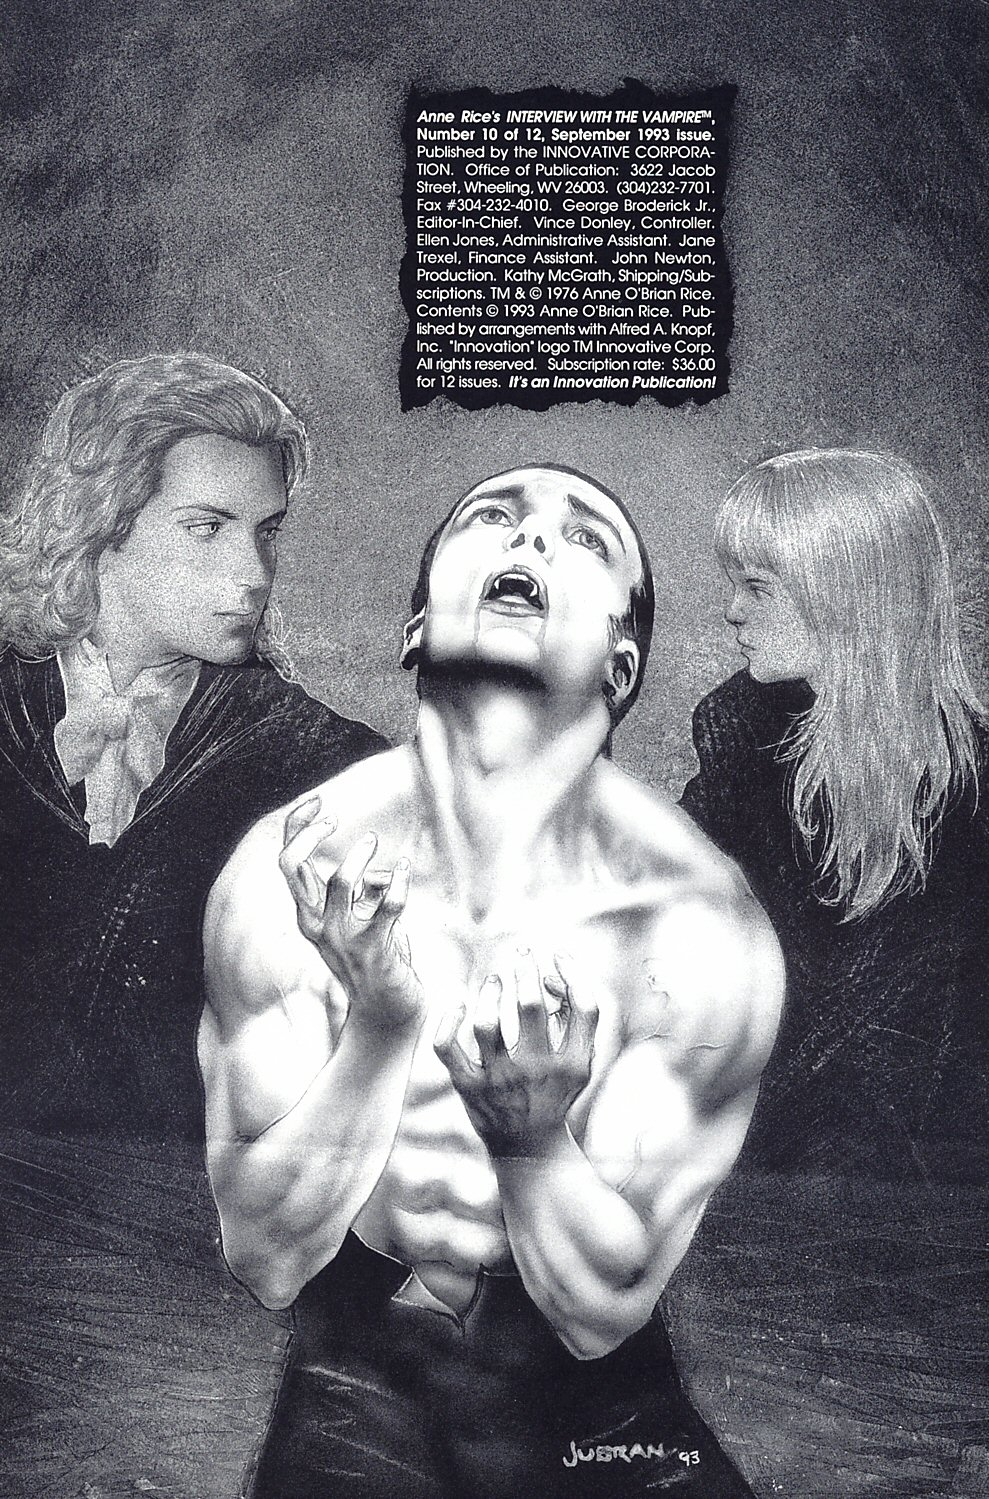 Read online Anne Rice's Interview with the Vampire comic -  Issue #10 - 3